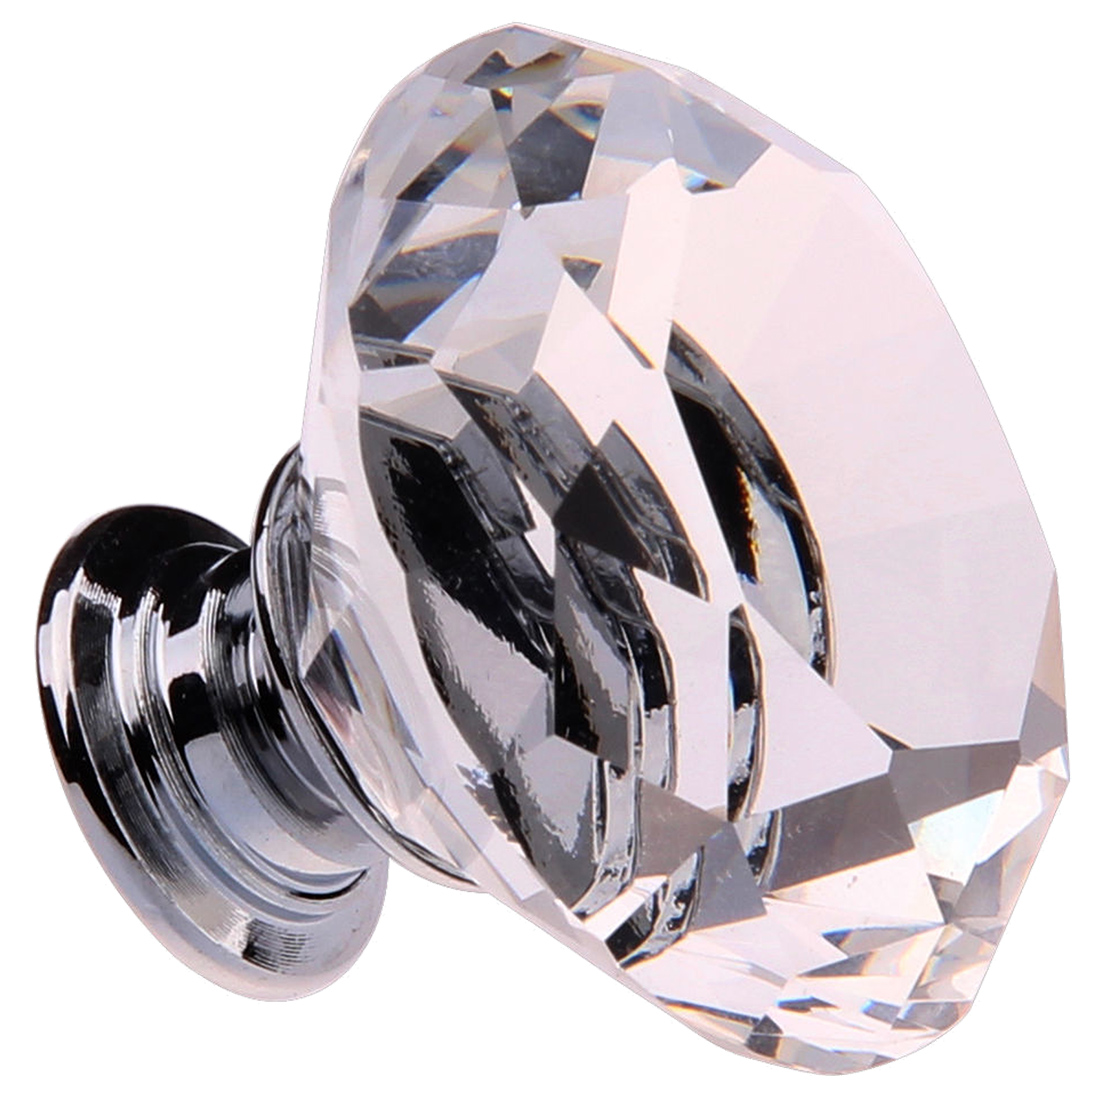 Colored glass door knobs - Bofo 8x 40mm Clear Crystal Glass Door Knobs Handles Diamond Drawer Cabinet Furniture China